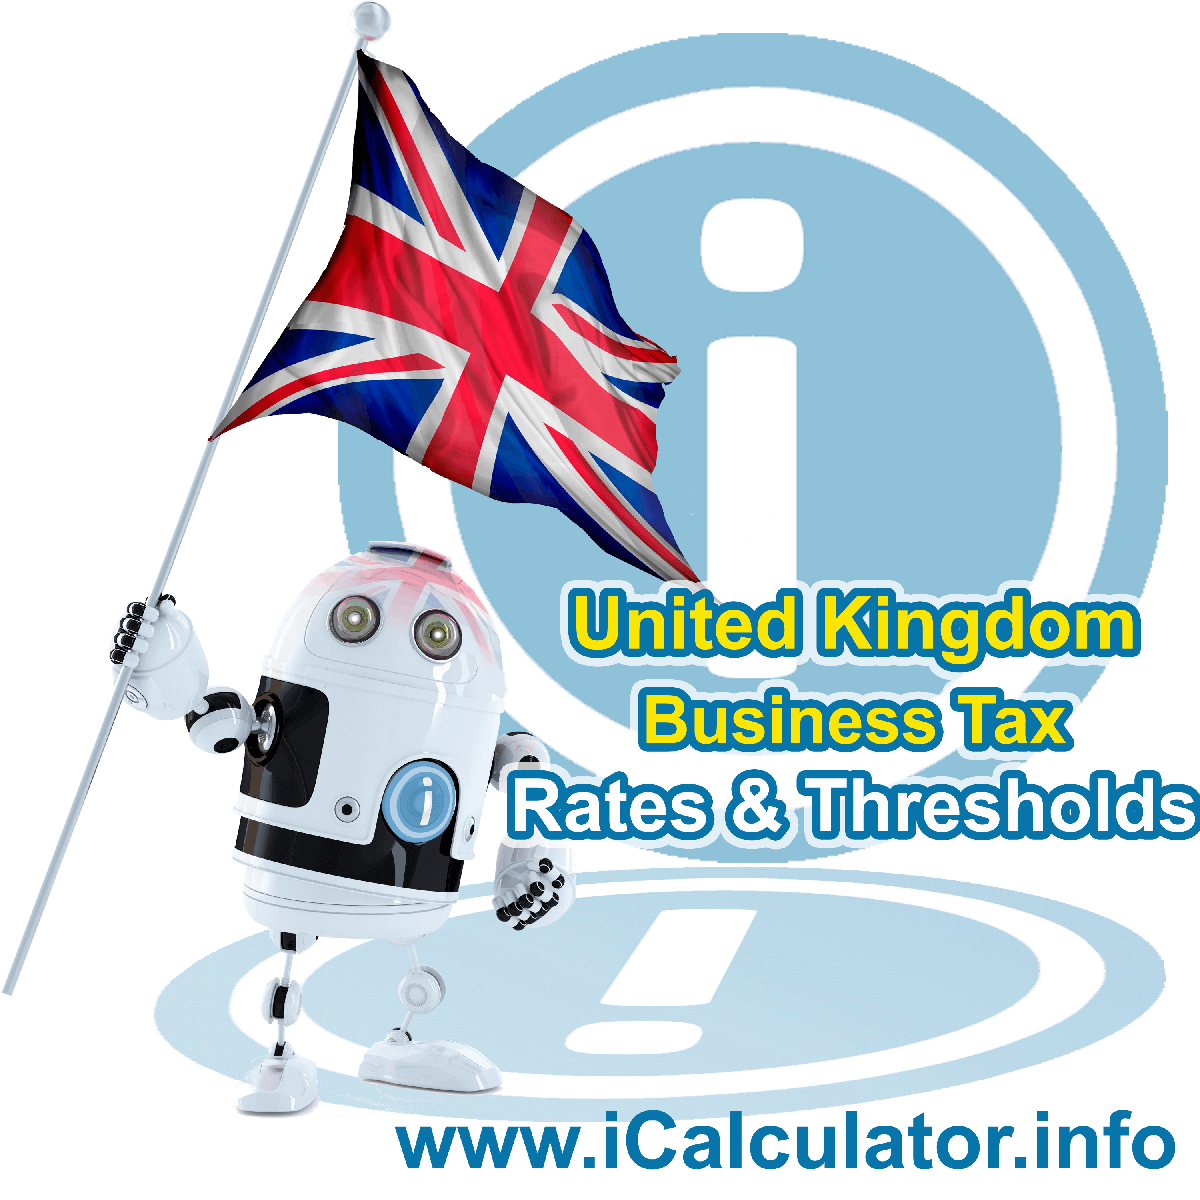 United Kingdom Corporation Tax Rates in 2020. This image shows the United Kingdom flag and information relating to the corporation tax formula for the United Kingdom Corporation Tax Calculator in 2020